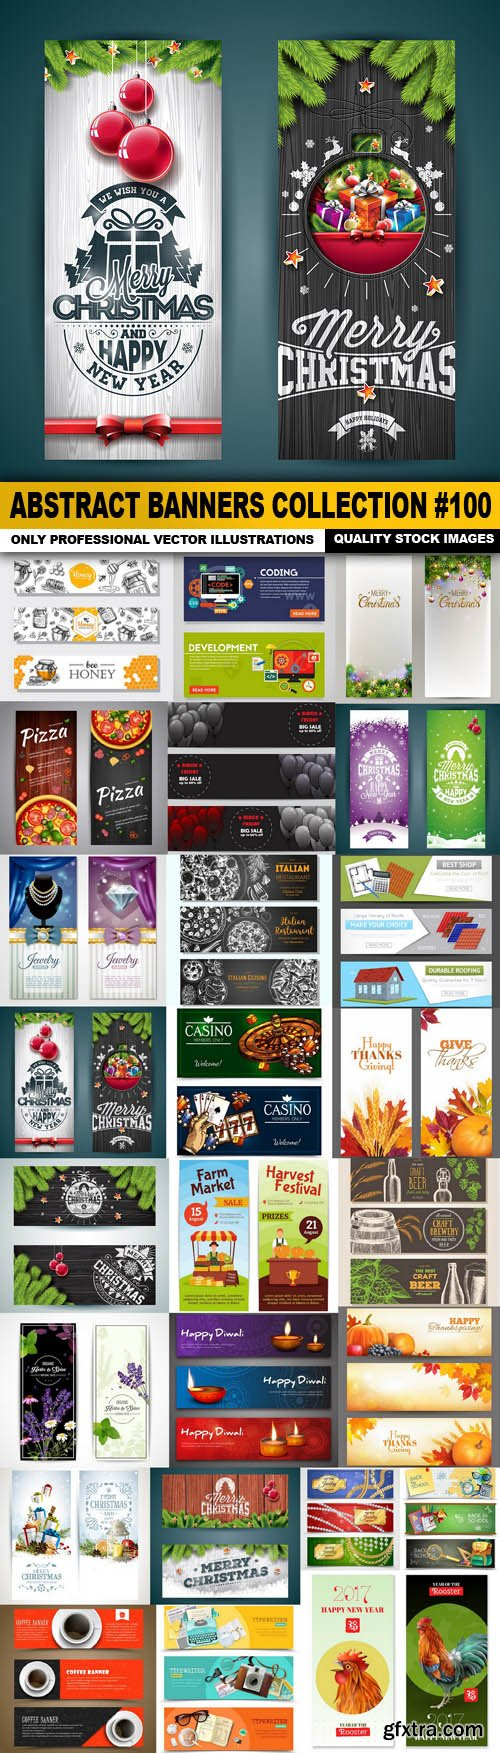 Abstract Banners Collection #100 - 25 Vectors